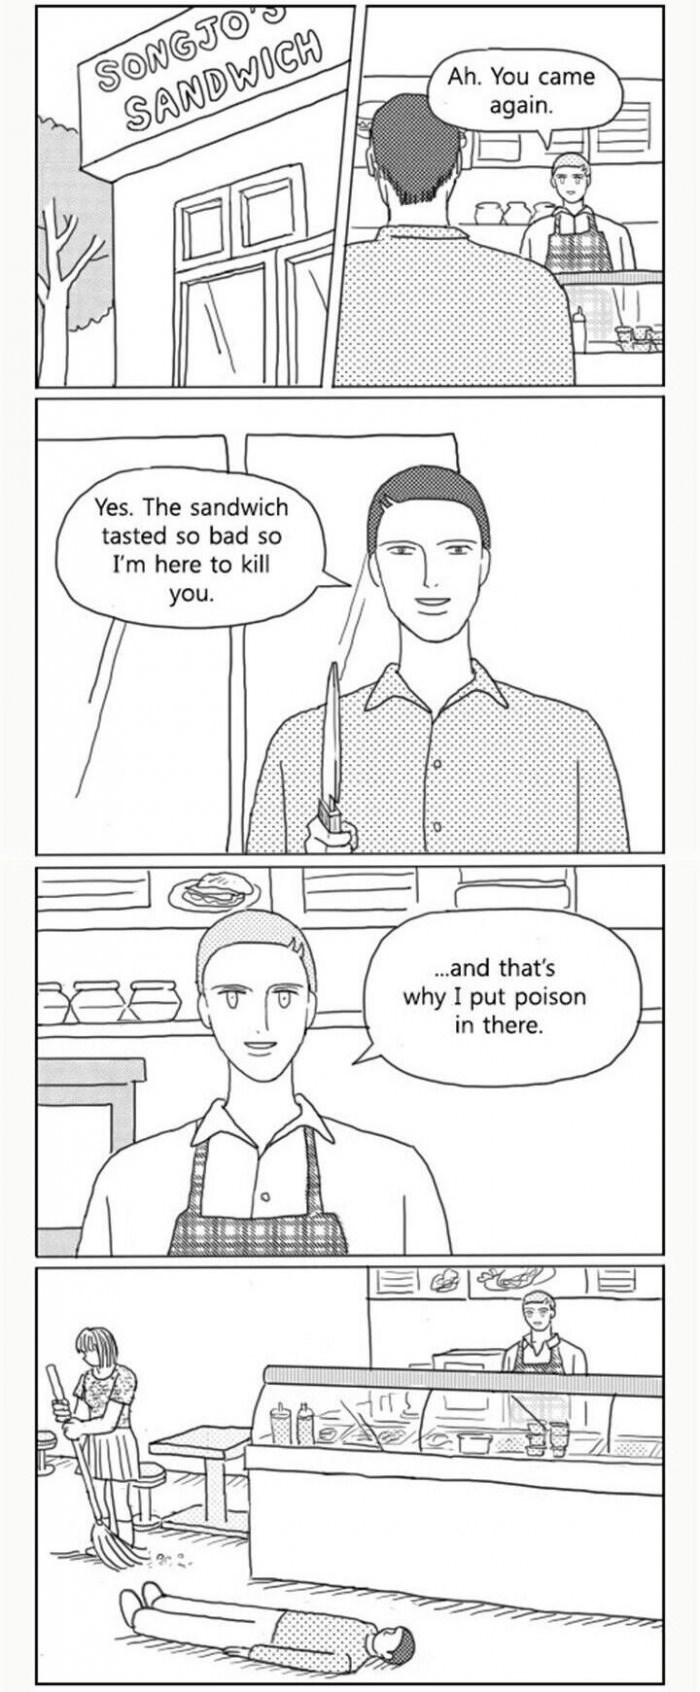 funny-web-comics-how-to-avoid-bad-yelp-reviews